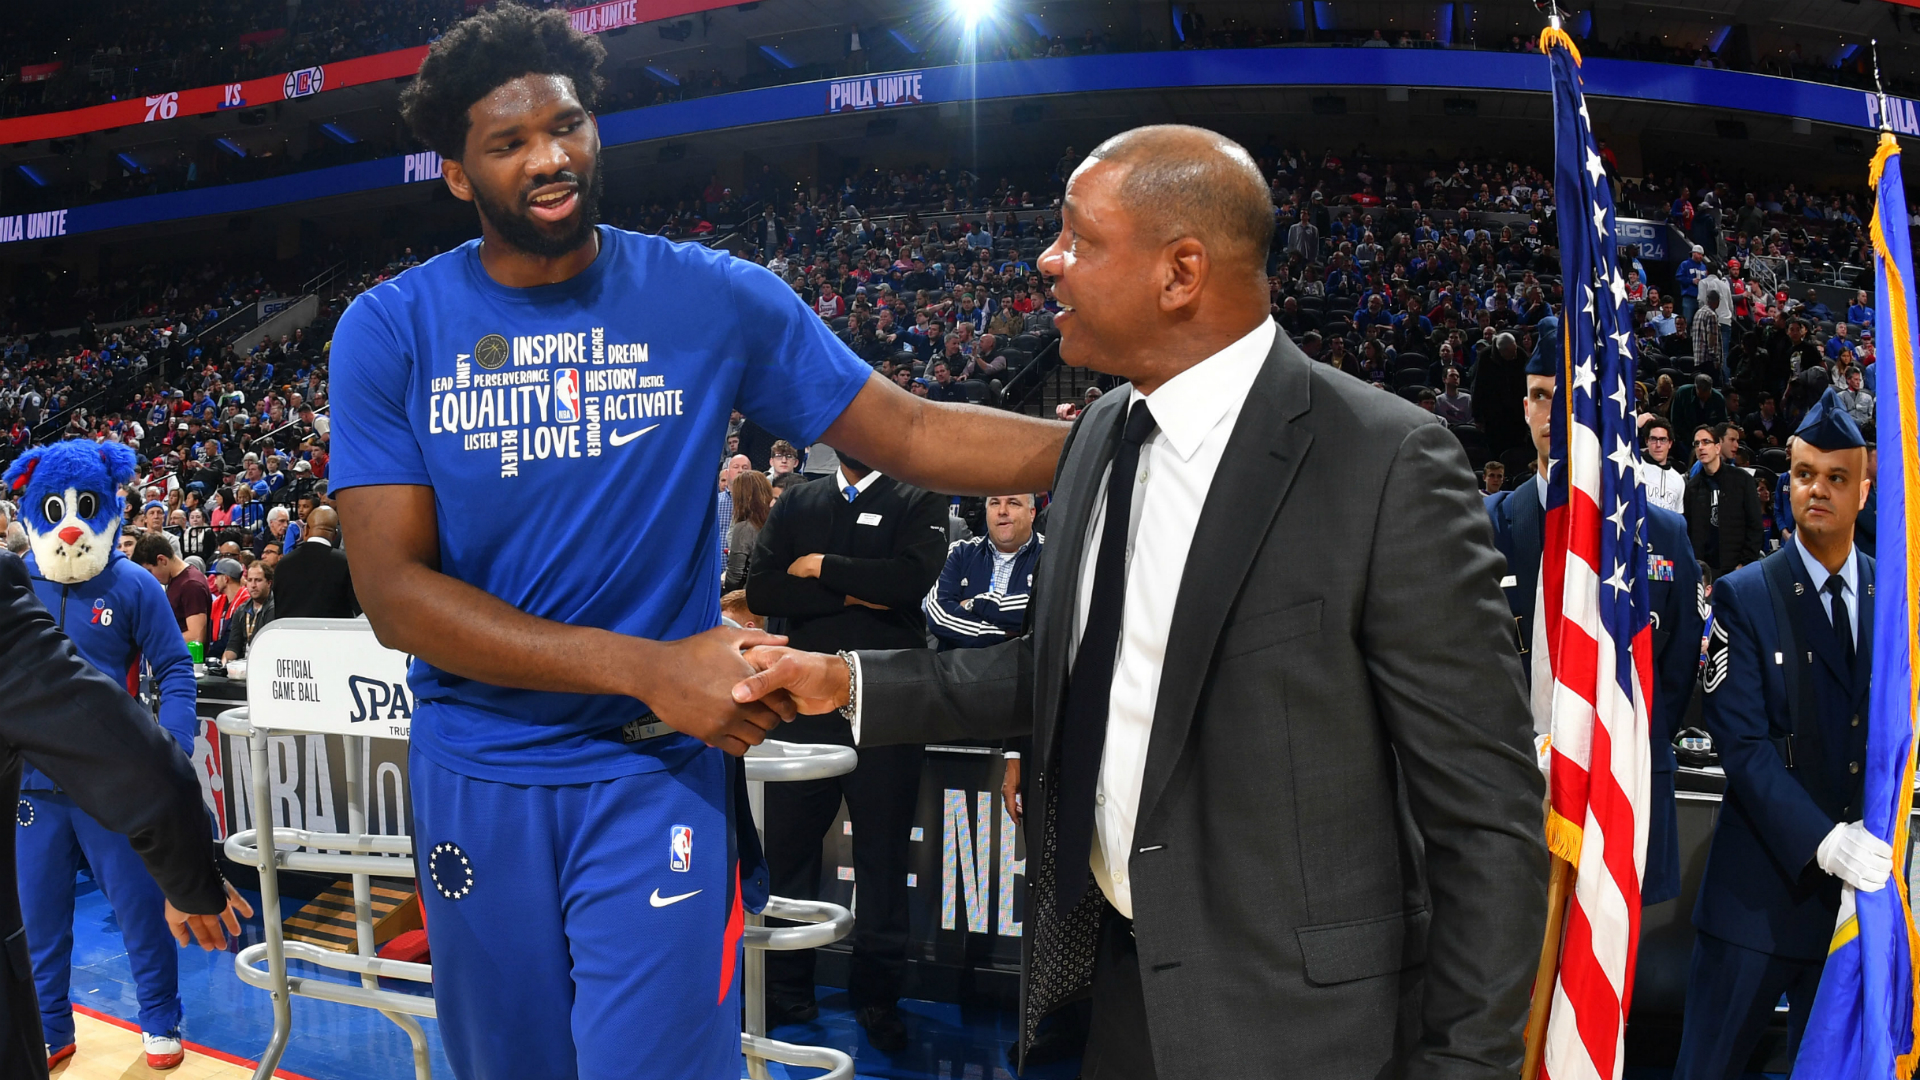 Embiid welcomes Rivers to 76ers after Philadelphia reportedly agree deal